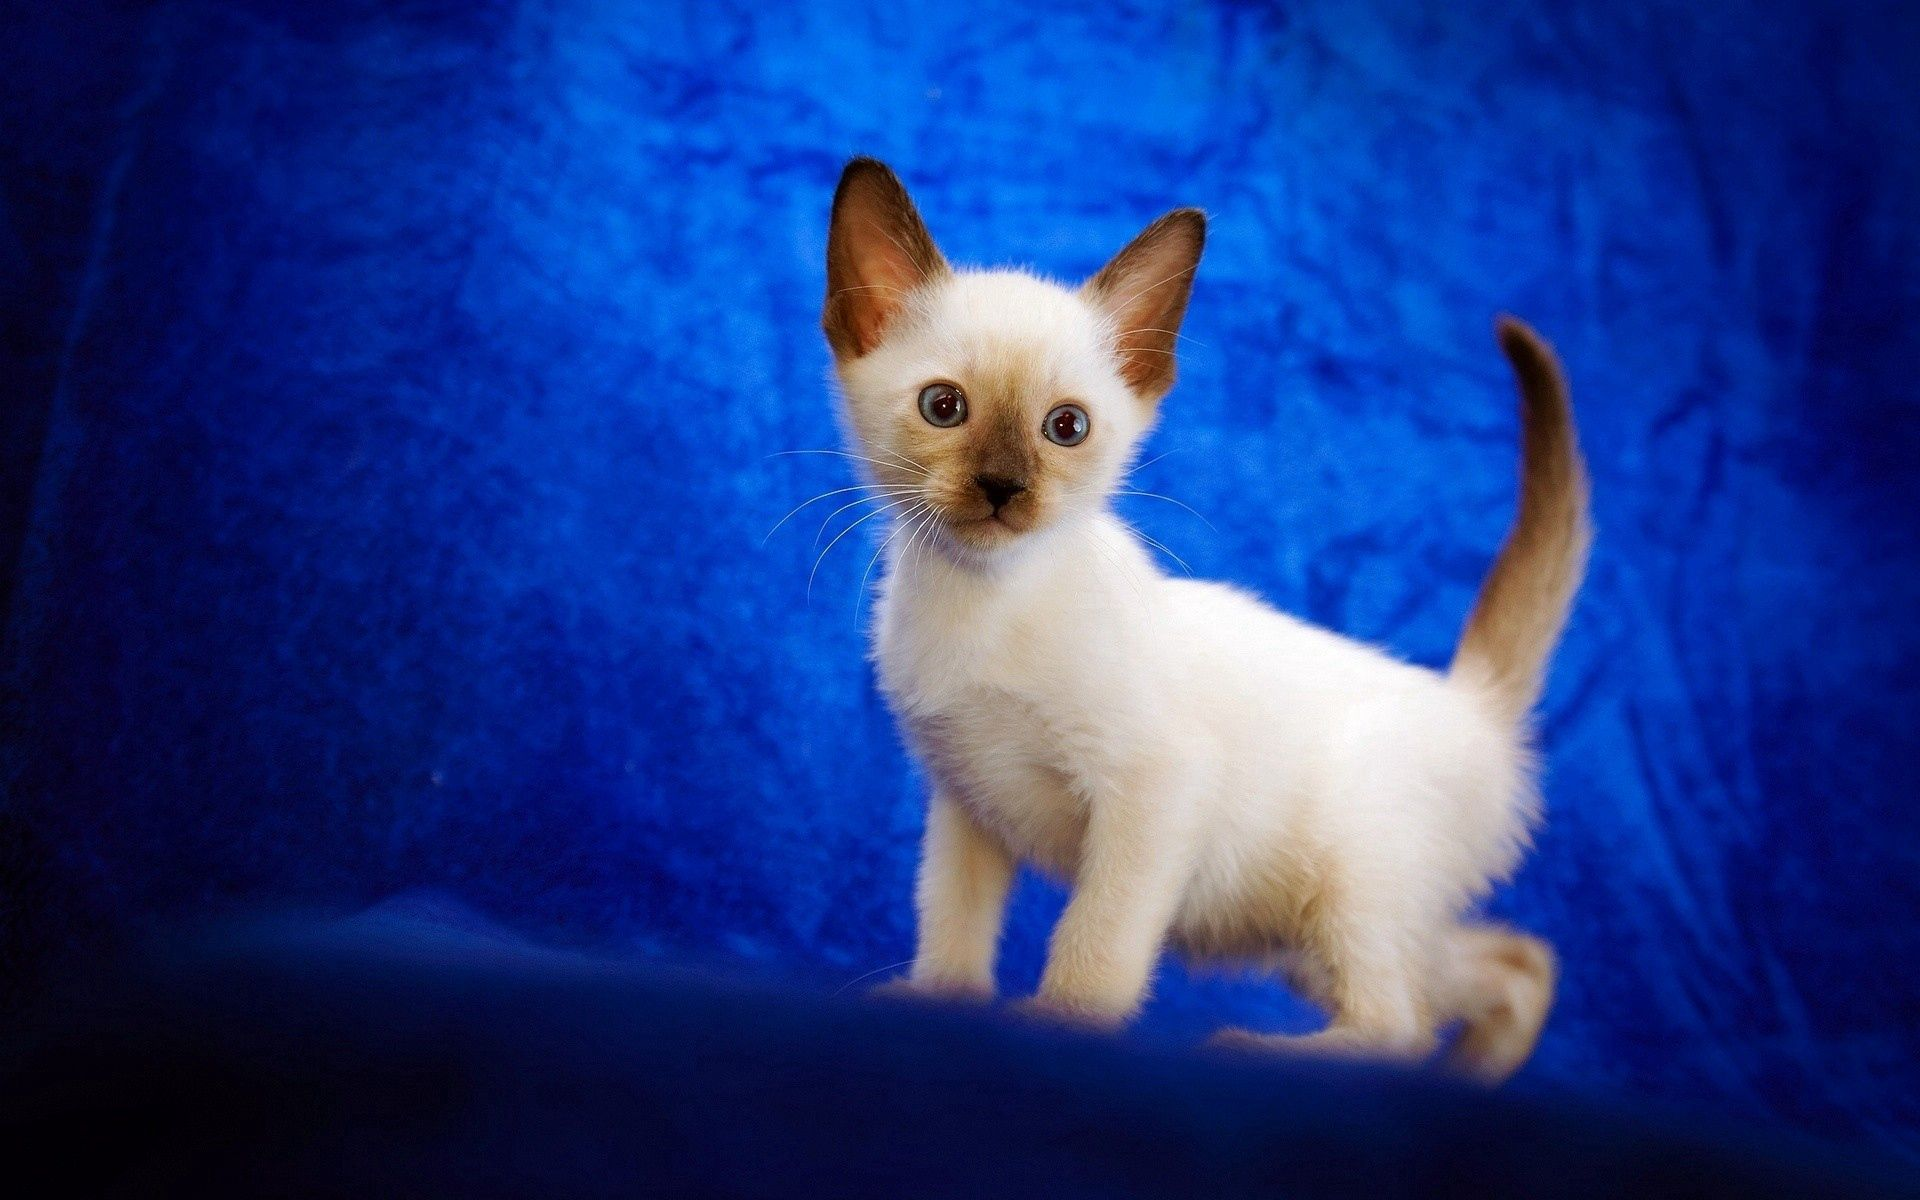 138359 download wallpaper Animals, Kitty, Kitten, Nice, Sweetheart, Siamese, Kid, Tot screensavers and pictures for free